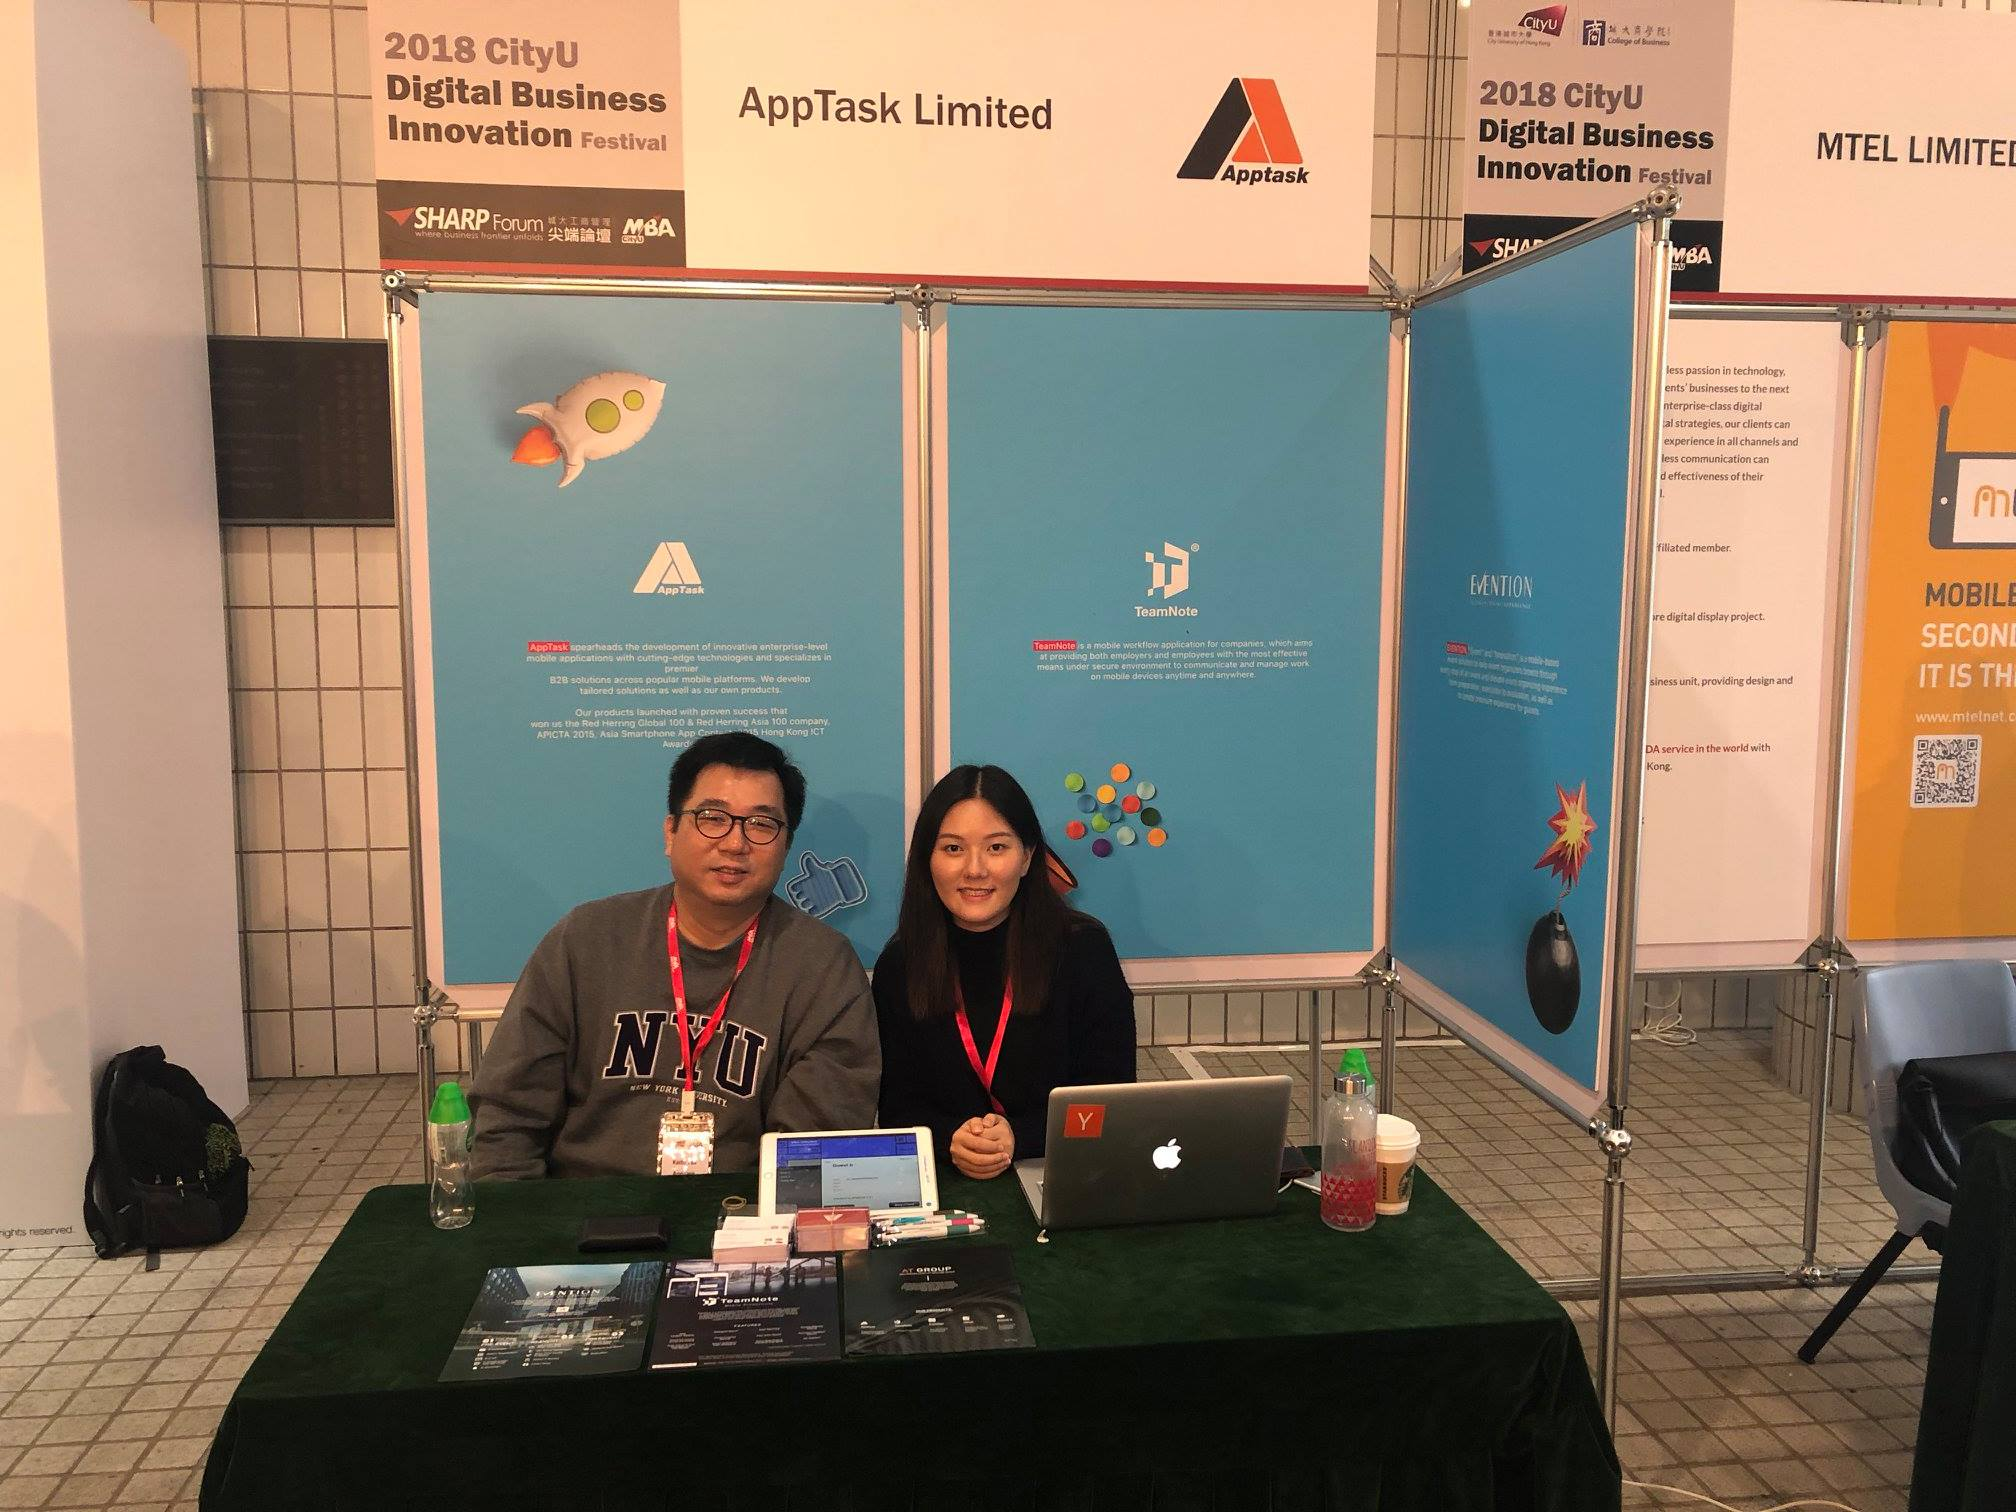 apptask, cityu, digital business, innovation, exhibition